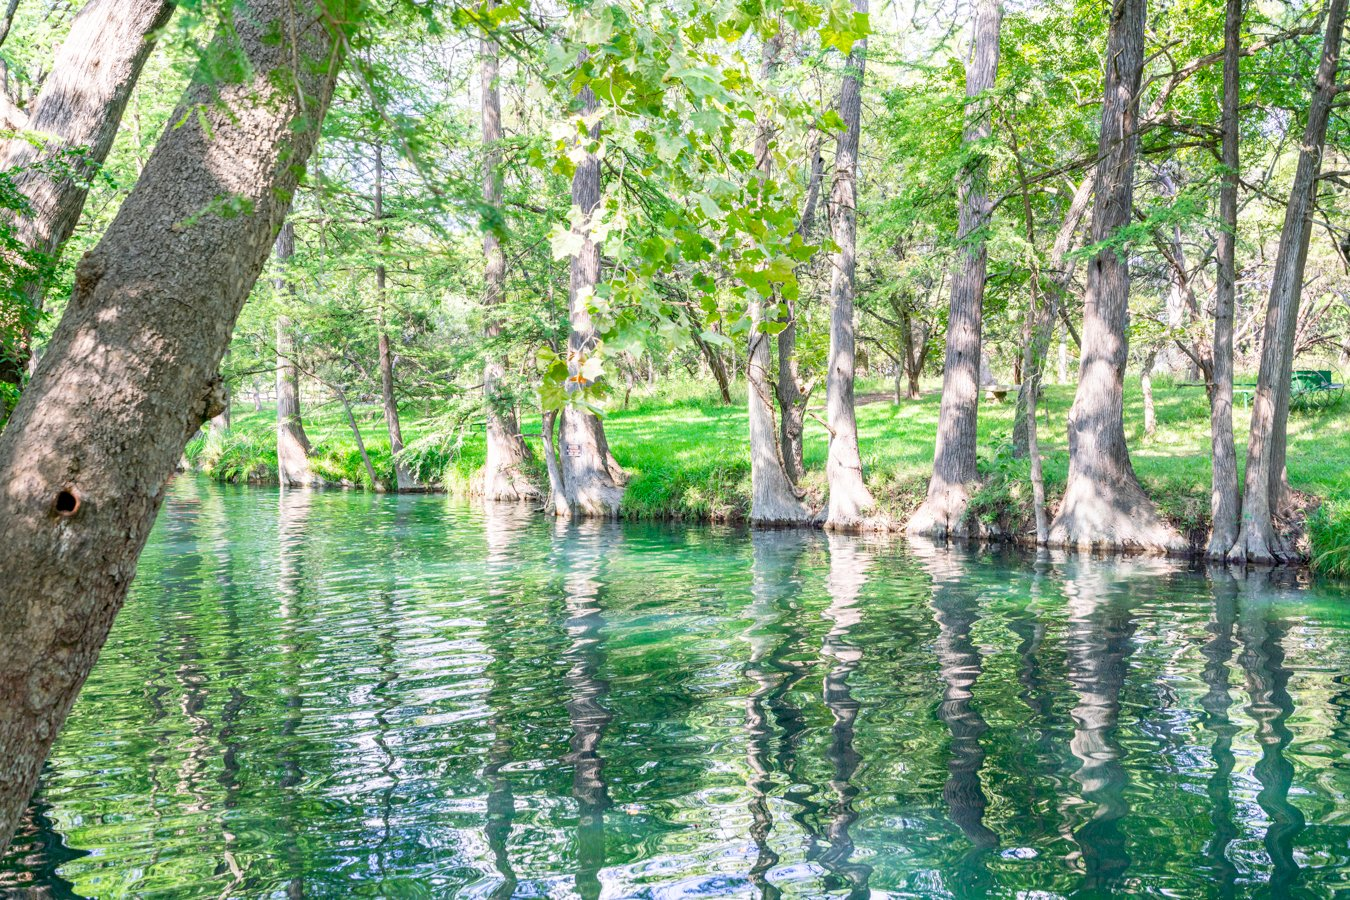 Blue Hole in Wimberley TX with no people visible showing the reflections of the cypress trees in the water, one of the best texas swimming holes